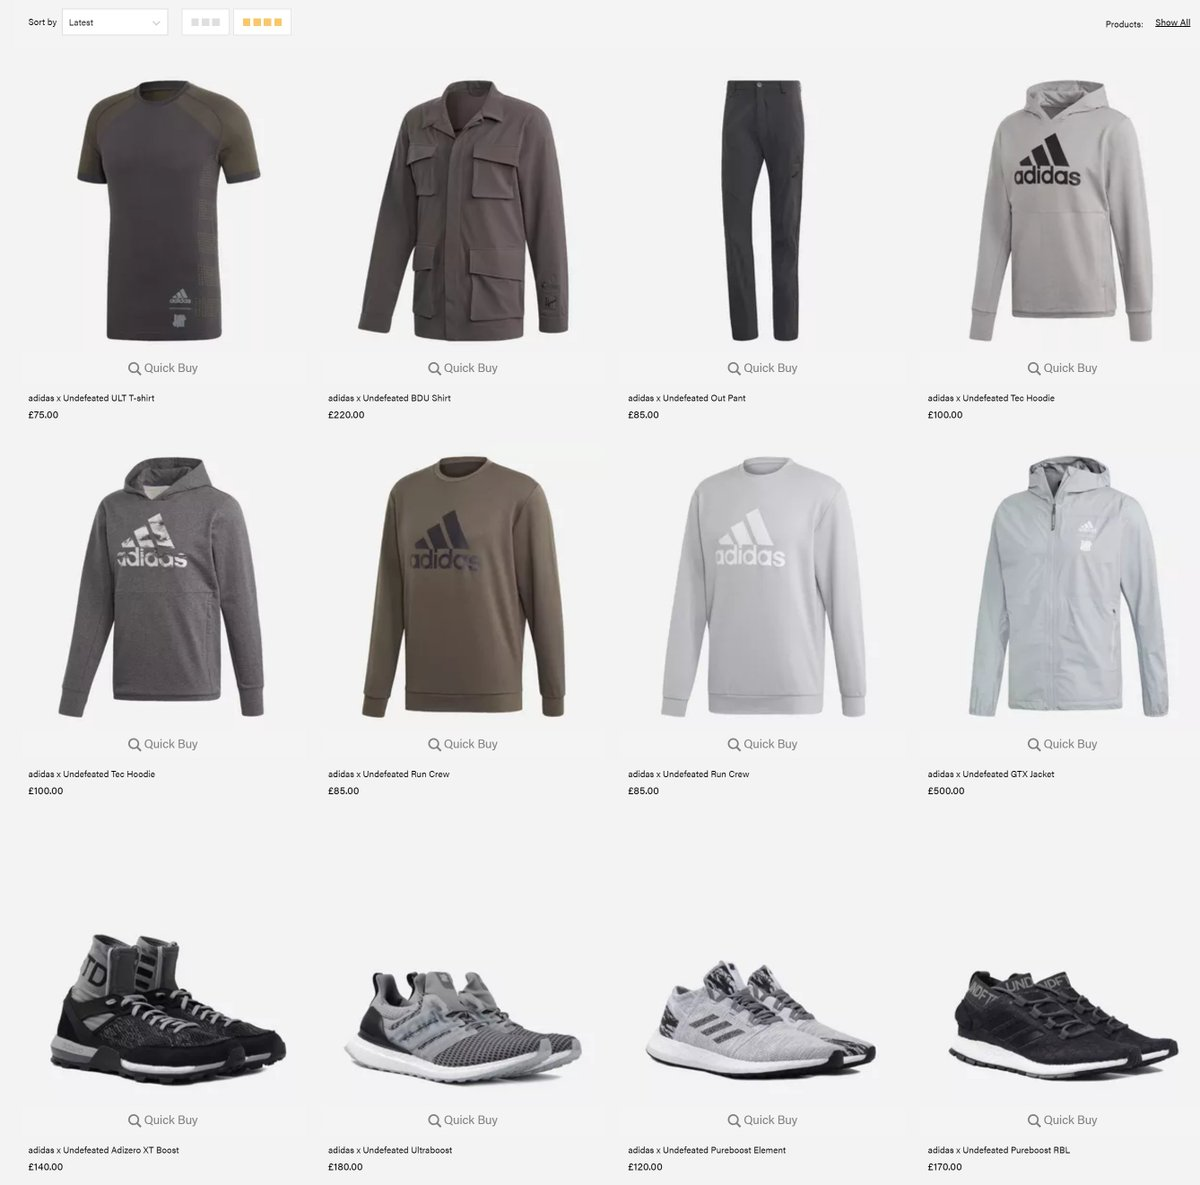 Die neue adidas x undefeated Kollektion What's new at